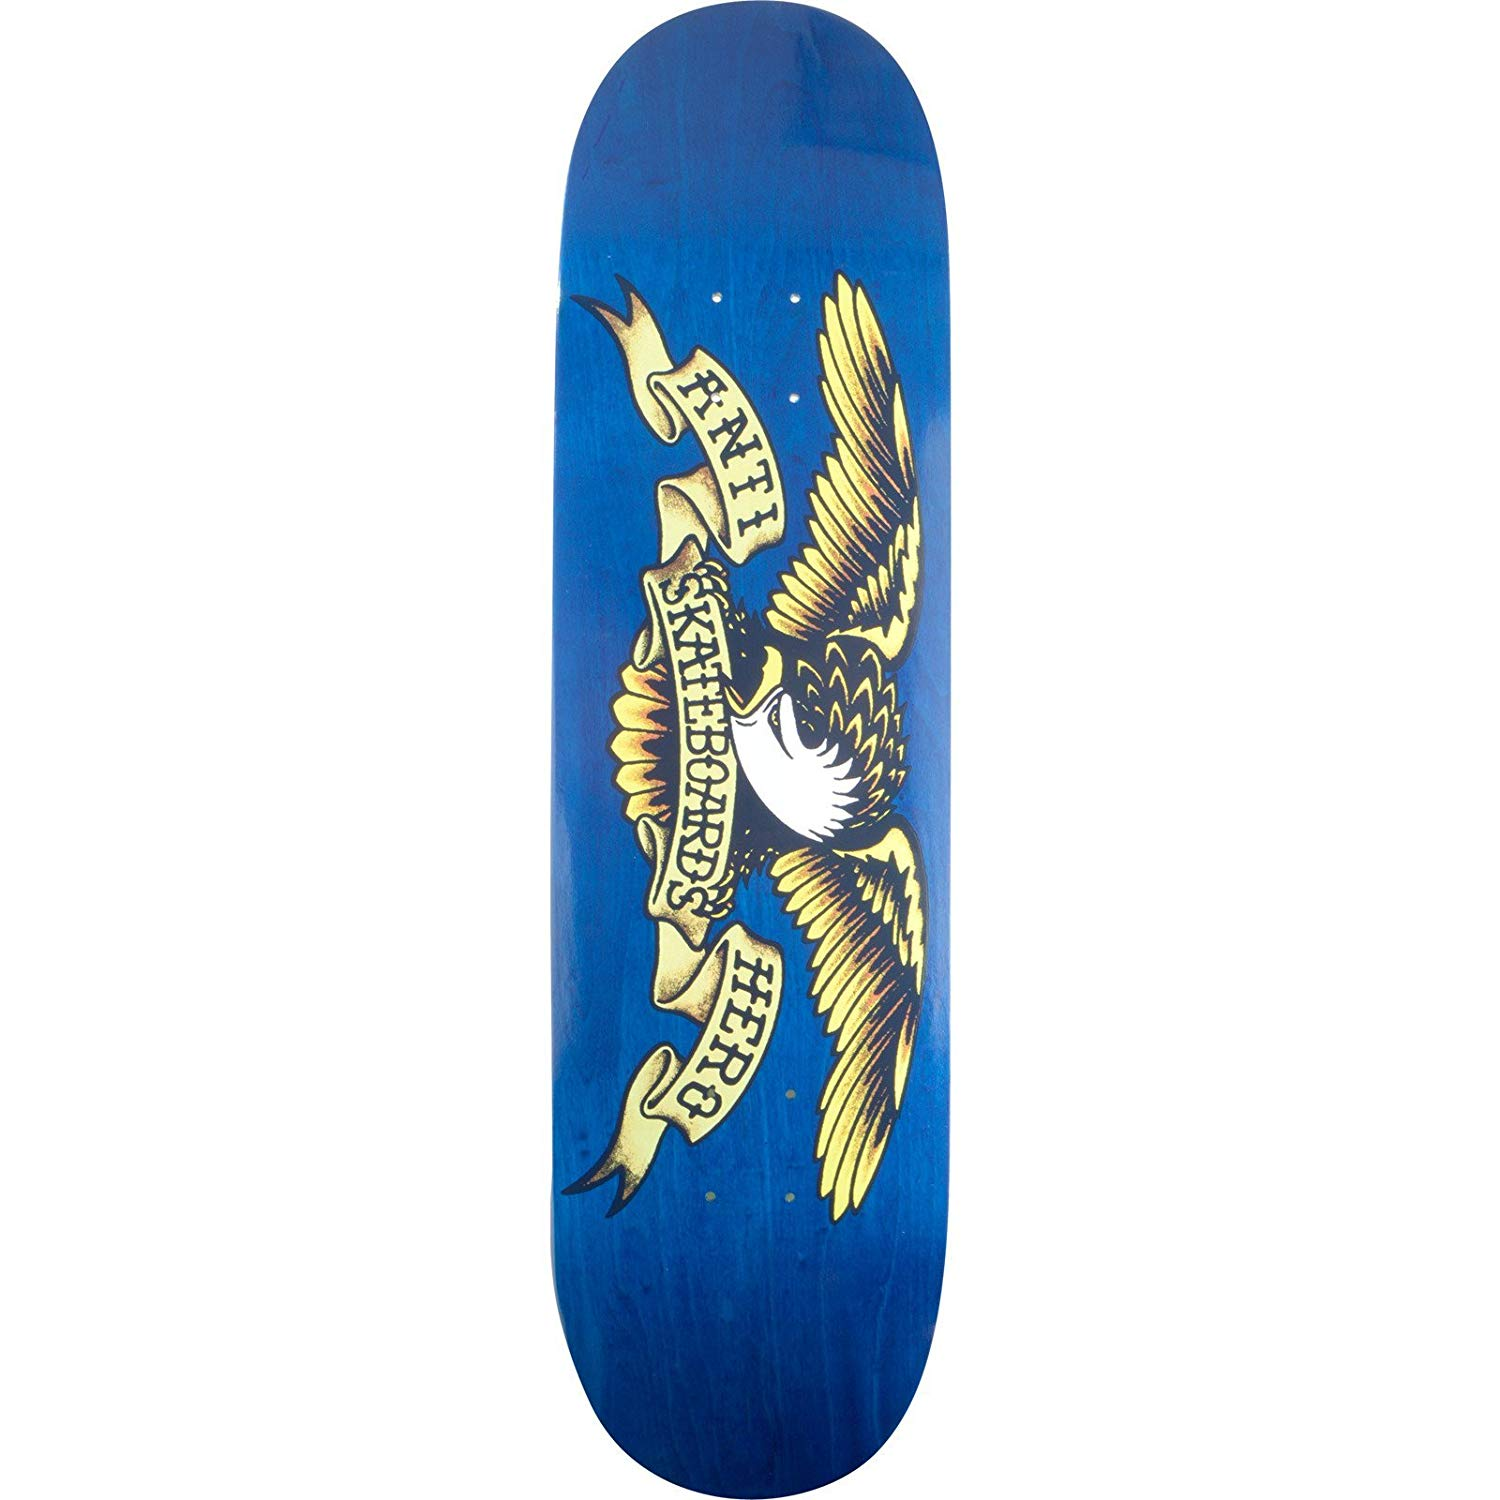 d6d2b4b2 Get Quotations · Anti Hero Skateboards Stained Eagle X-Large Blue Skateboard  Deck - 8.5